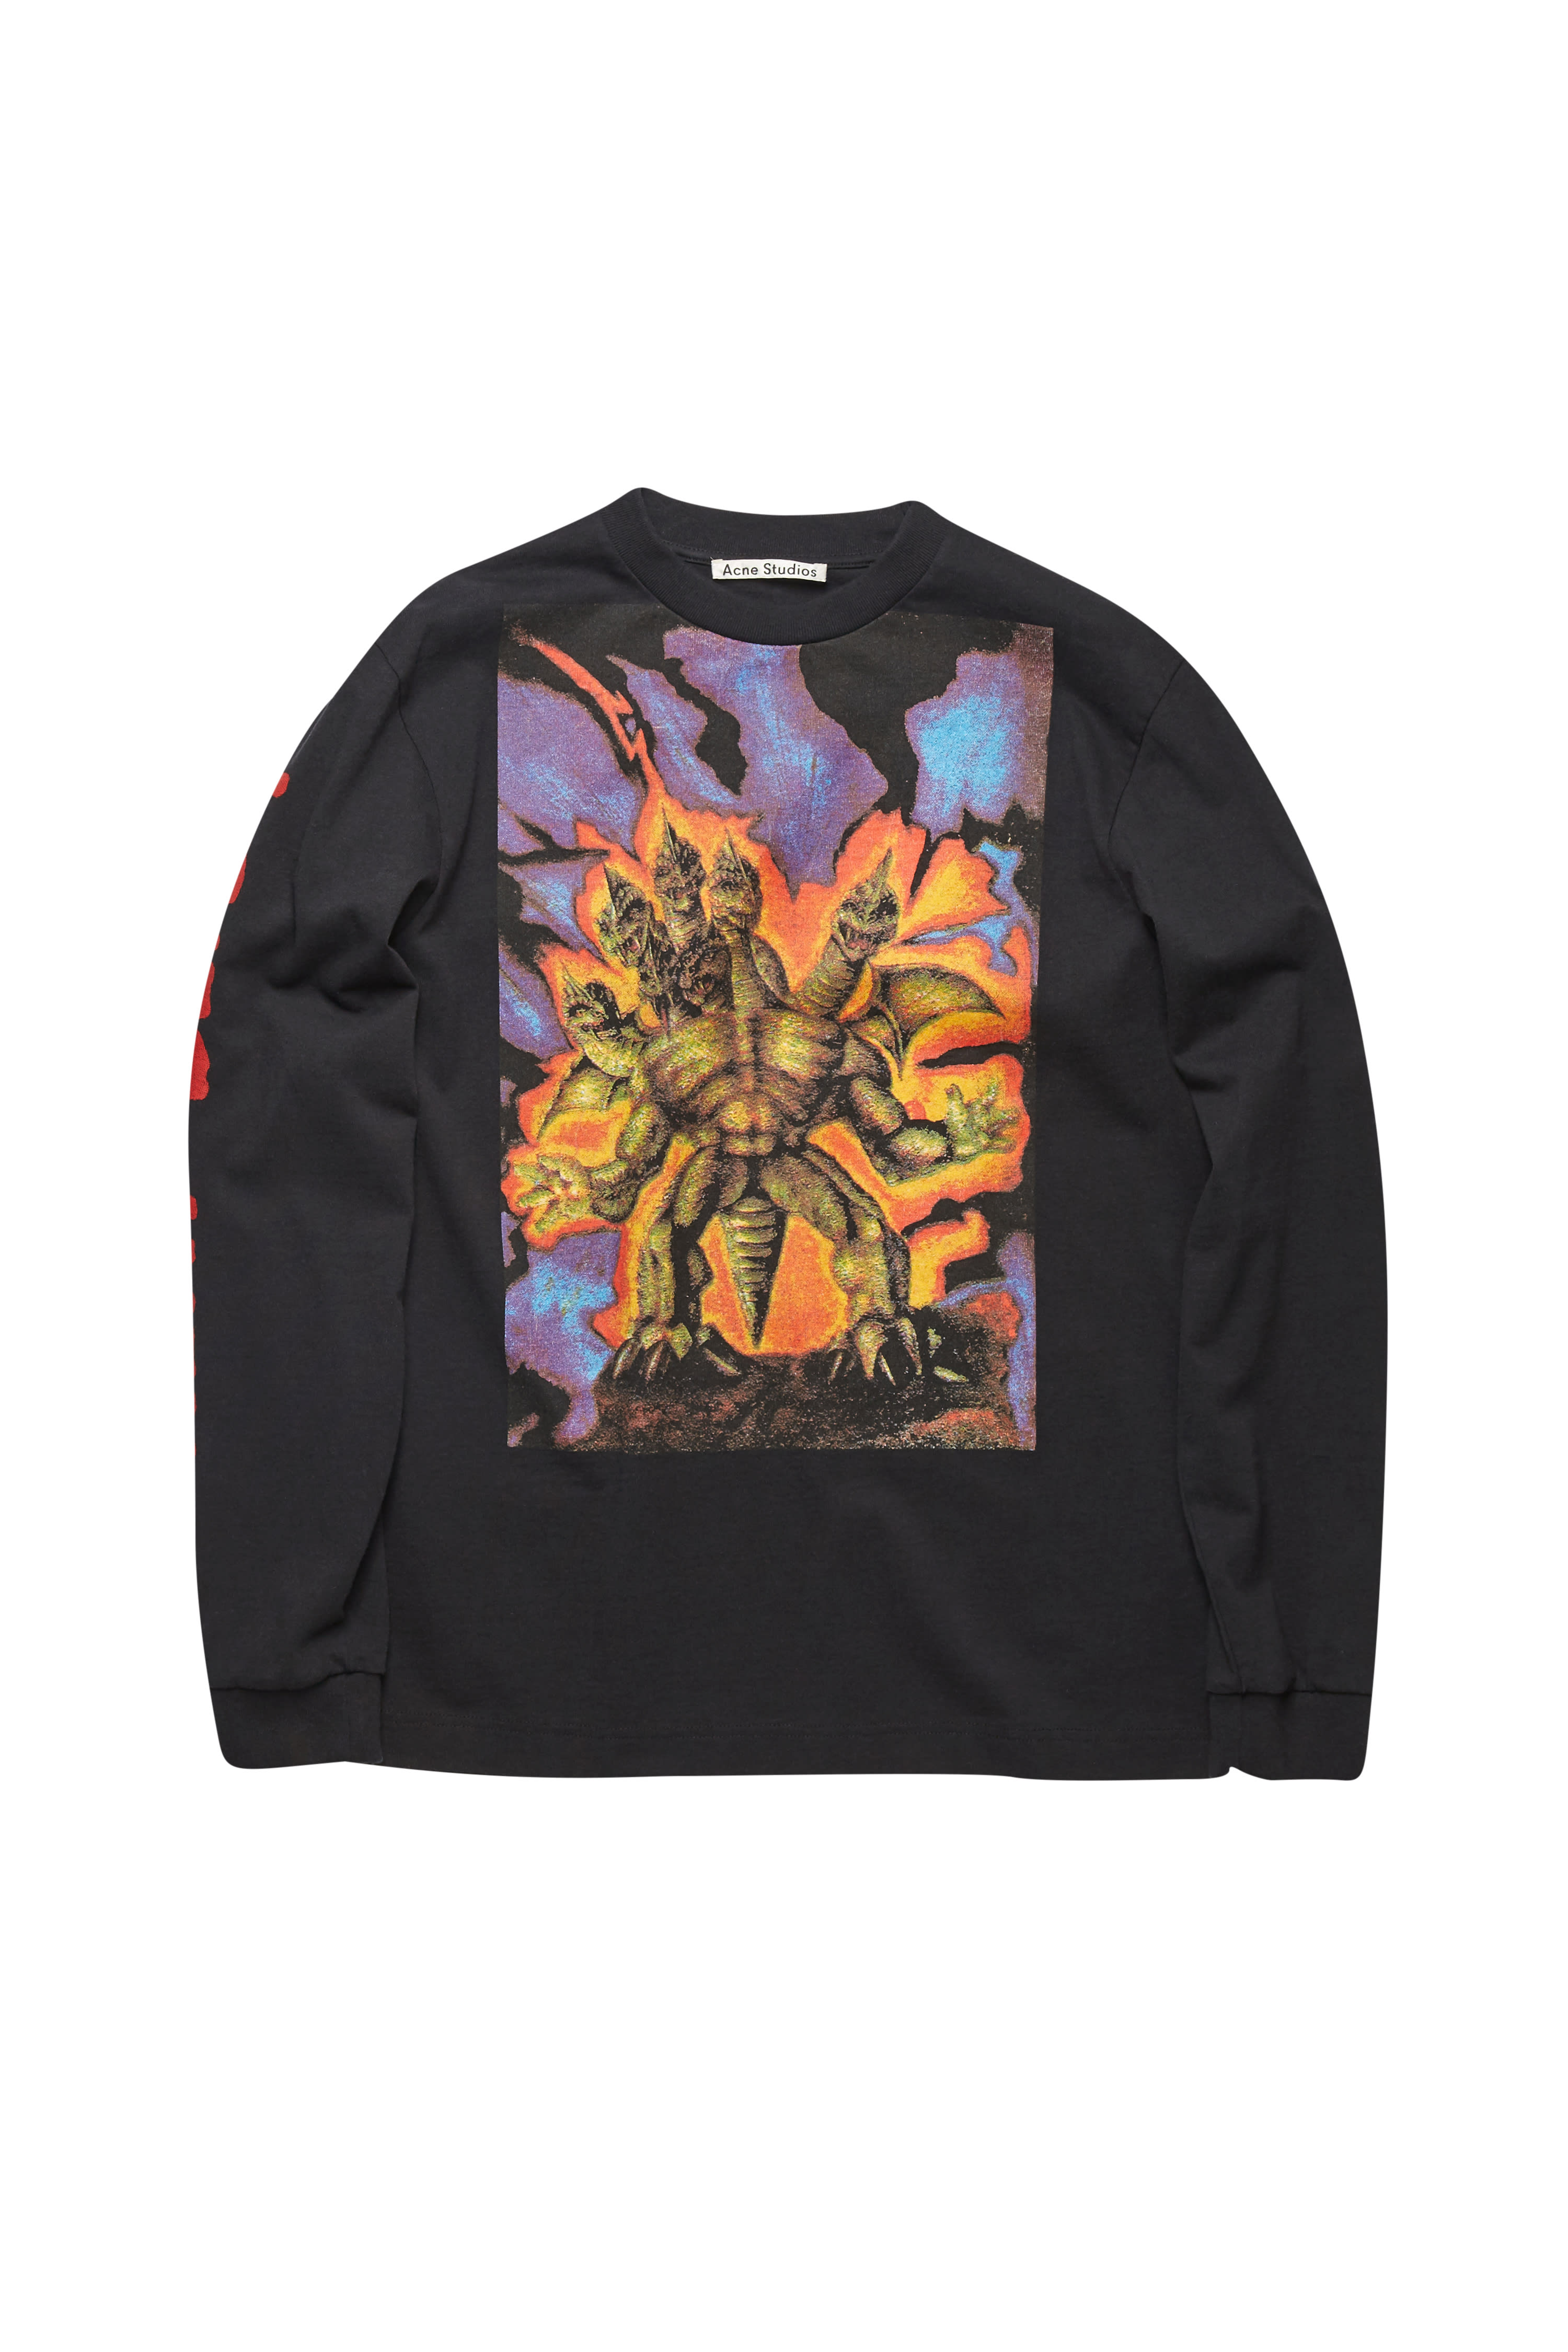 Complex Best Style Releases Acne Studios Monster In My Pocket Crewneck